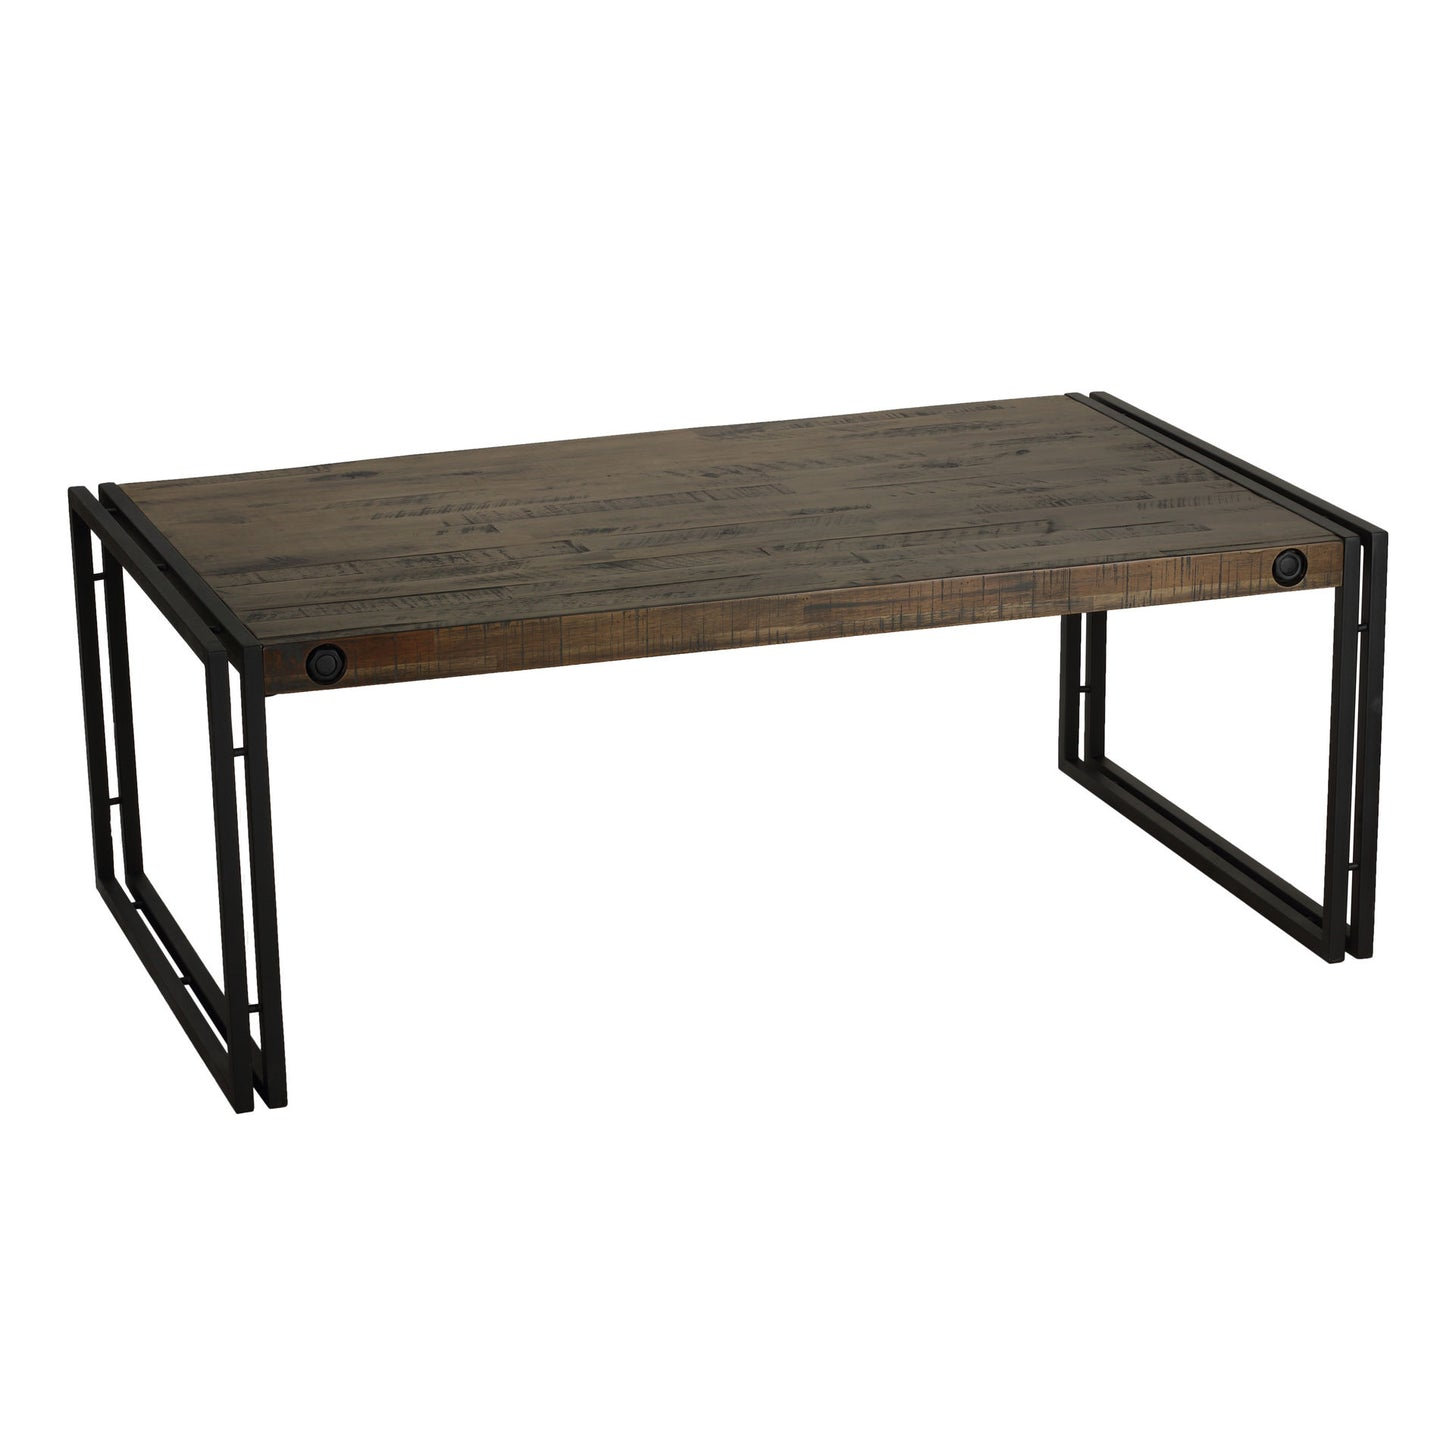 Cortesi Home Penni Coffee Table, Solid Wood with Black Metal Frame, Dark Grey